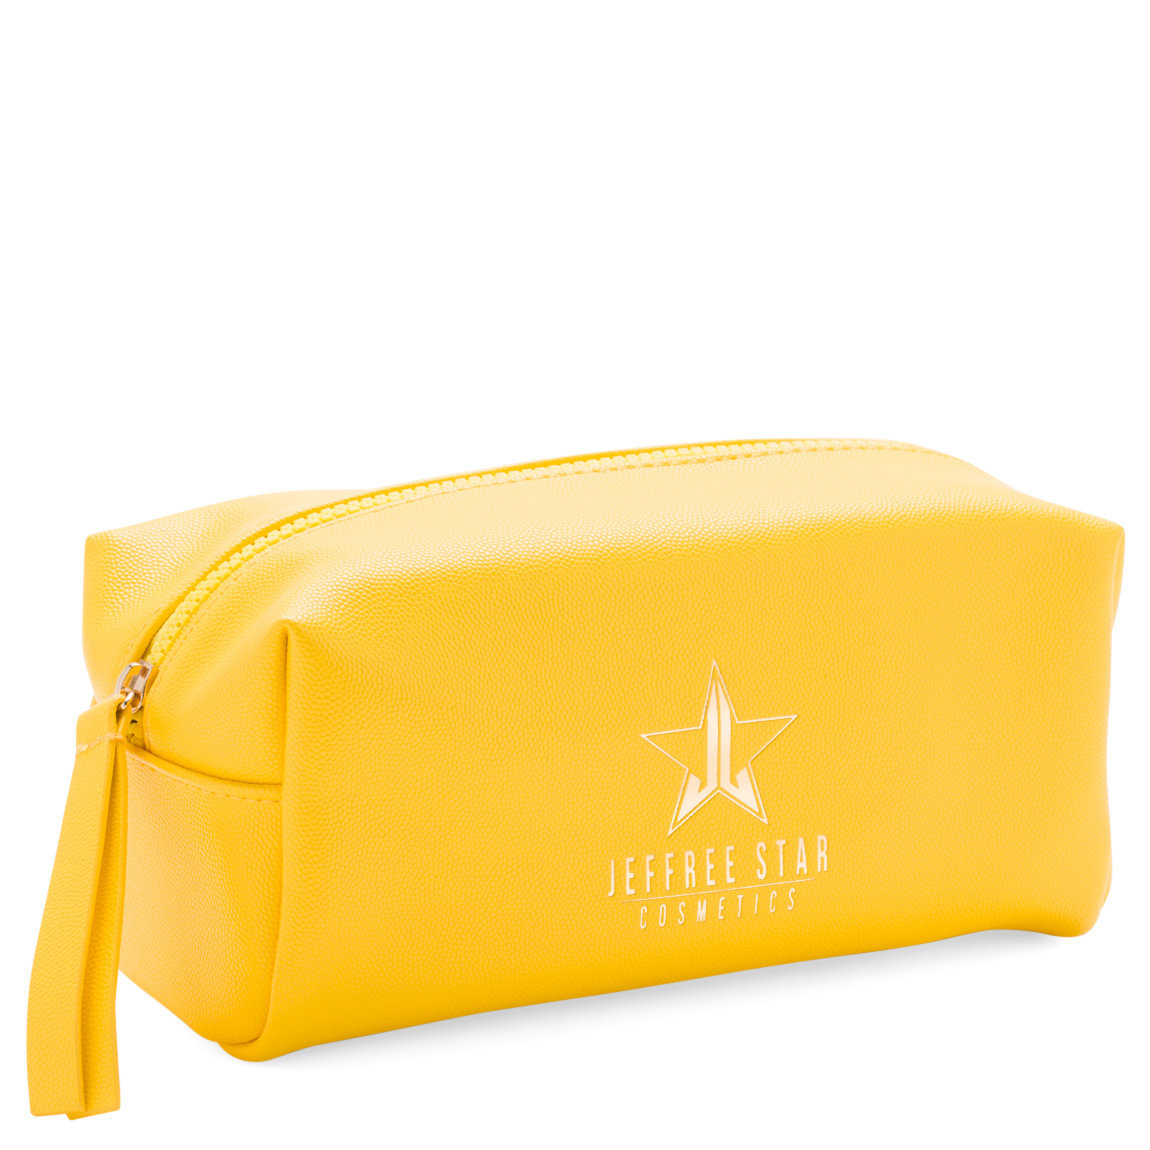 Jeffree Star Cosmetics Accessory Bag Yellow product smear.